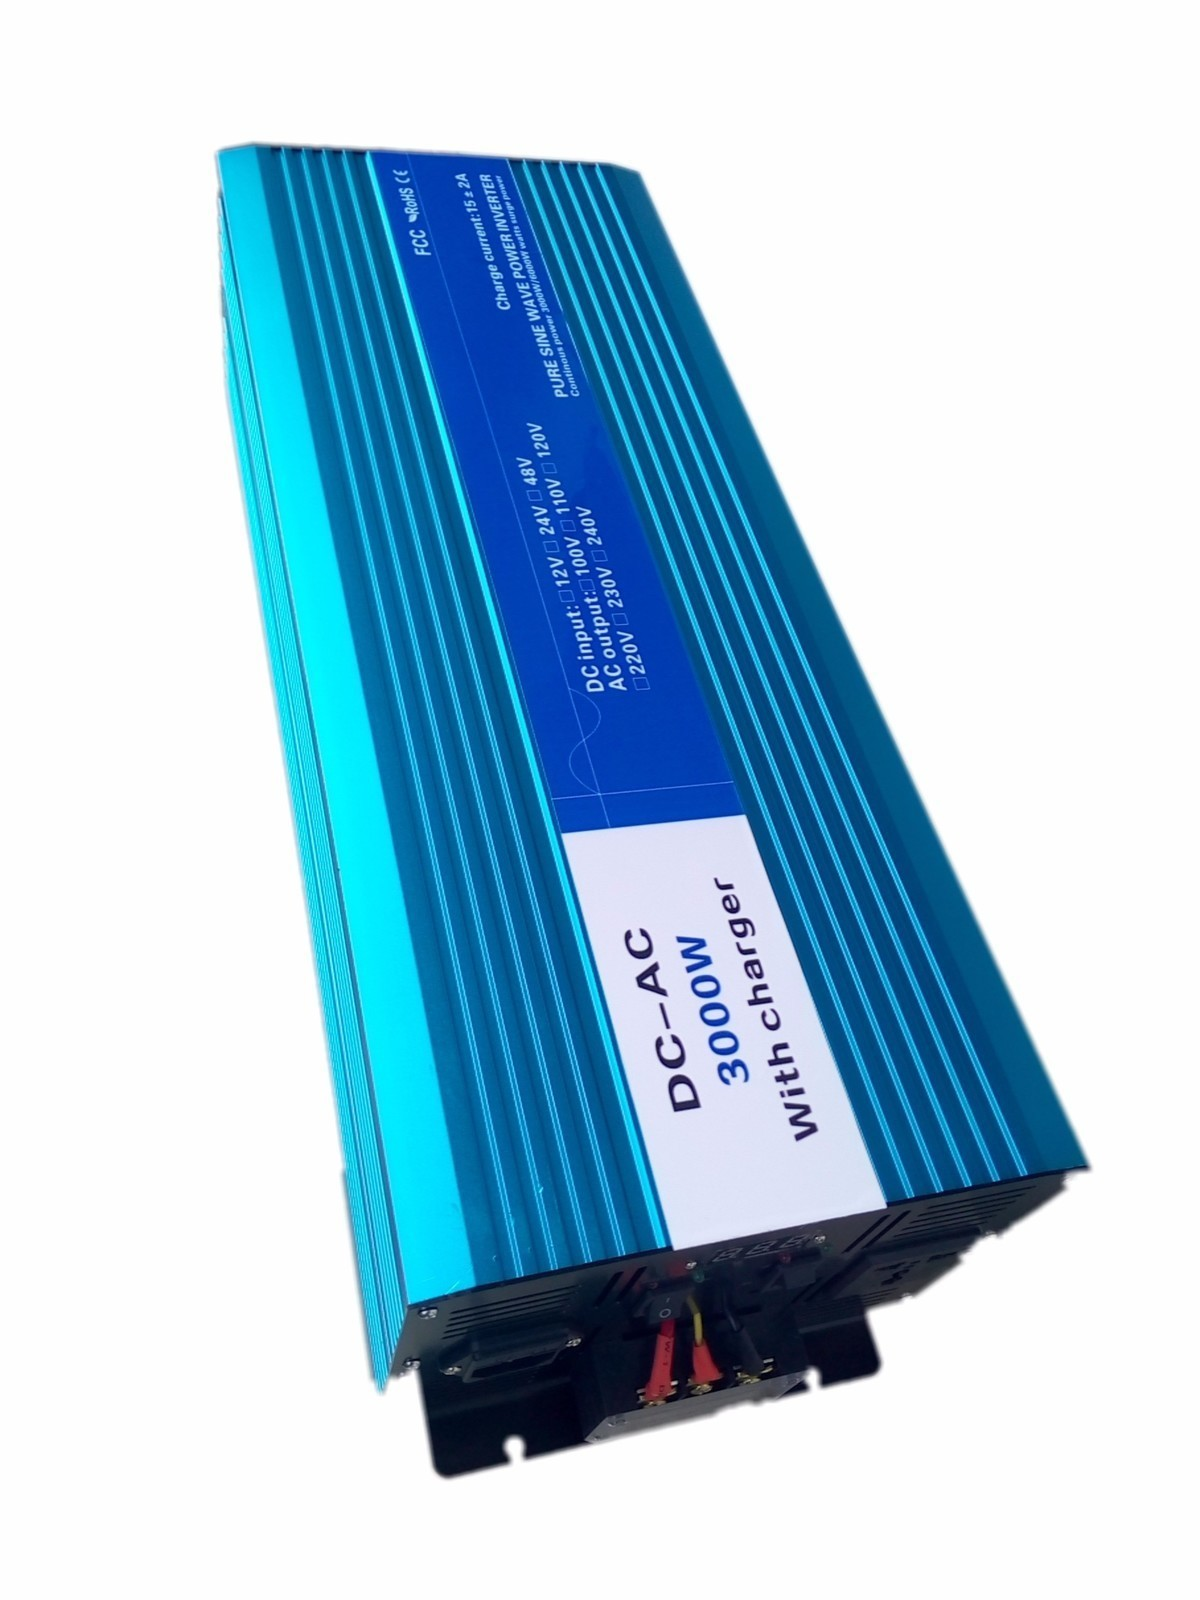 3000W Pure Sine Wave Inverter,DC 12V/24V/48V To AC 110V/220V,off Grid Solar voltage converter With Panel Charger And UPS 5000w pure sine wave inverter dc 12v 24v 48v to ac 110v 220v off grid ups solar inverter voltage converter with charger and ups